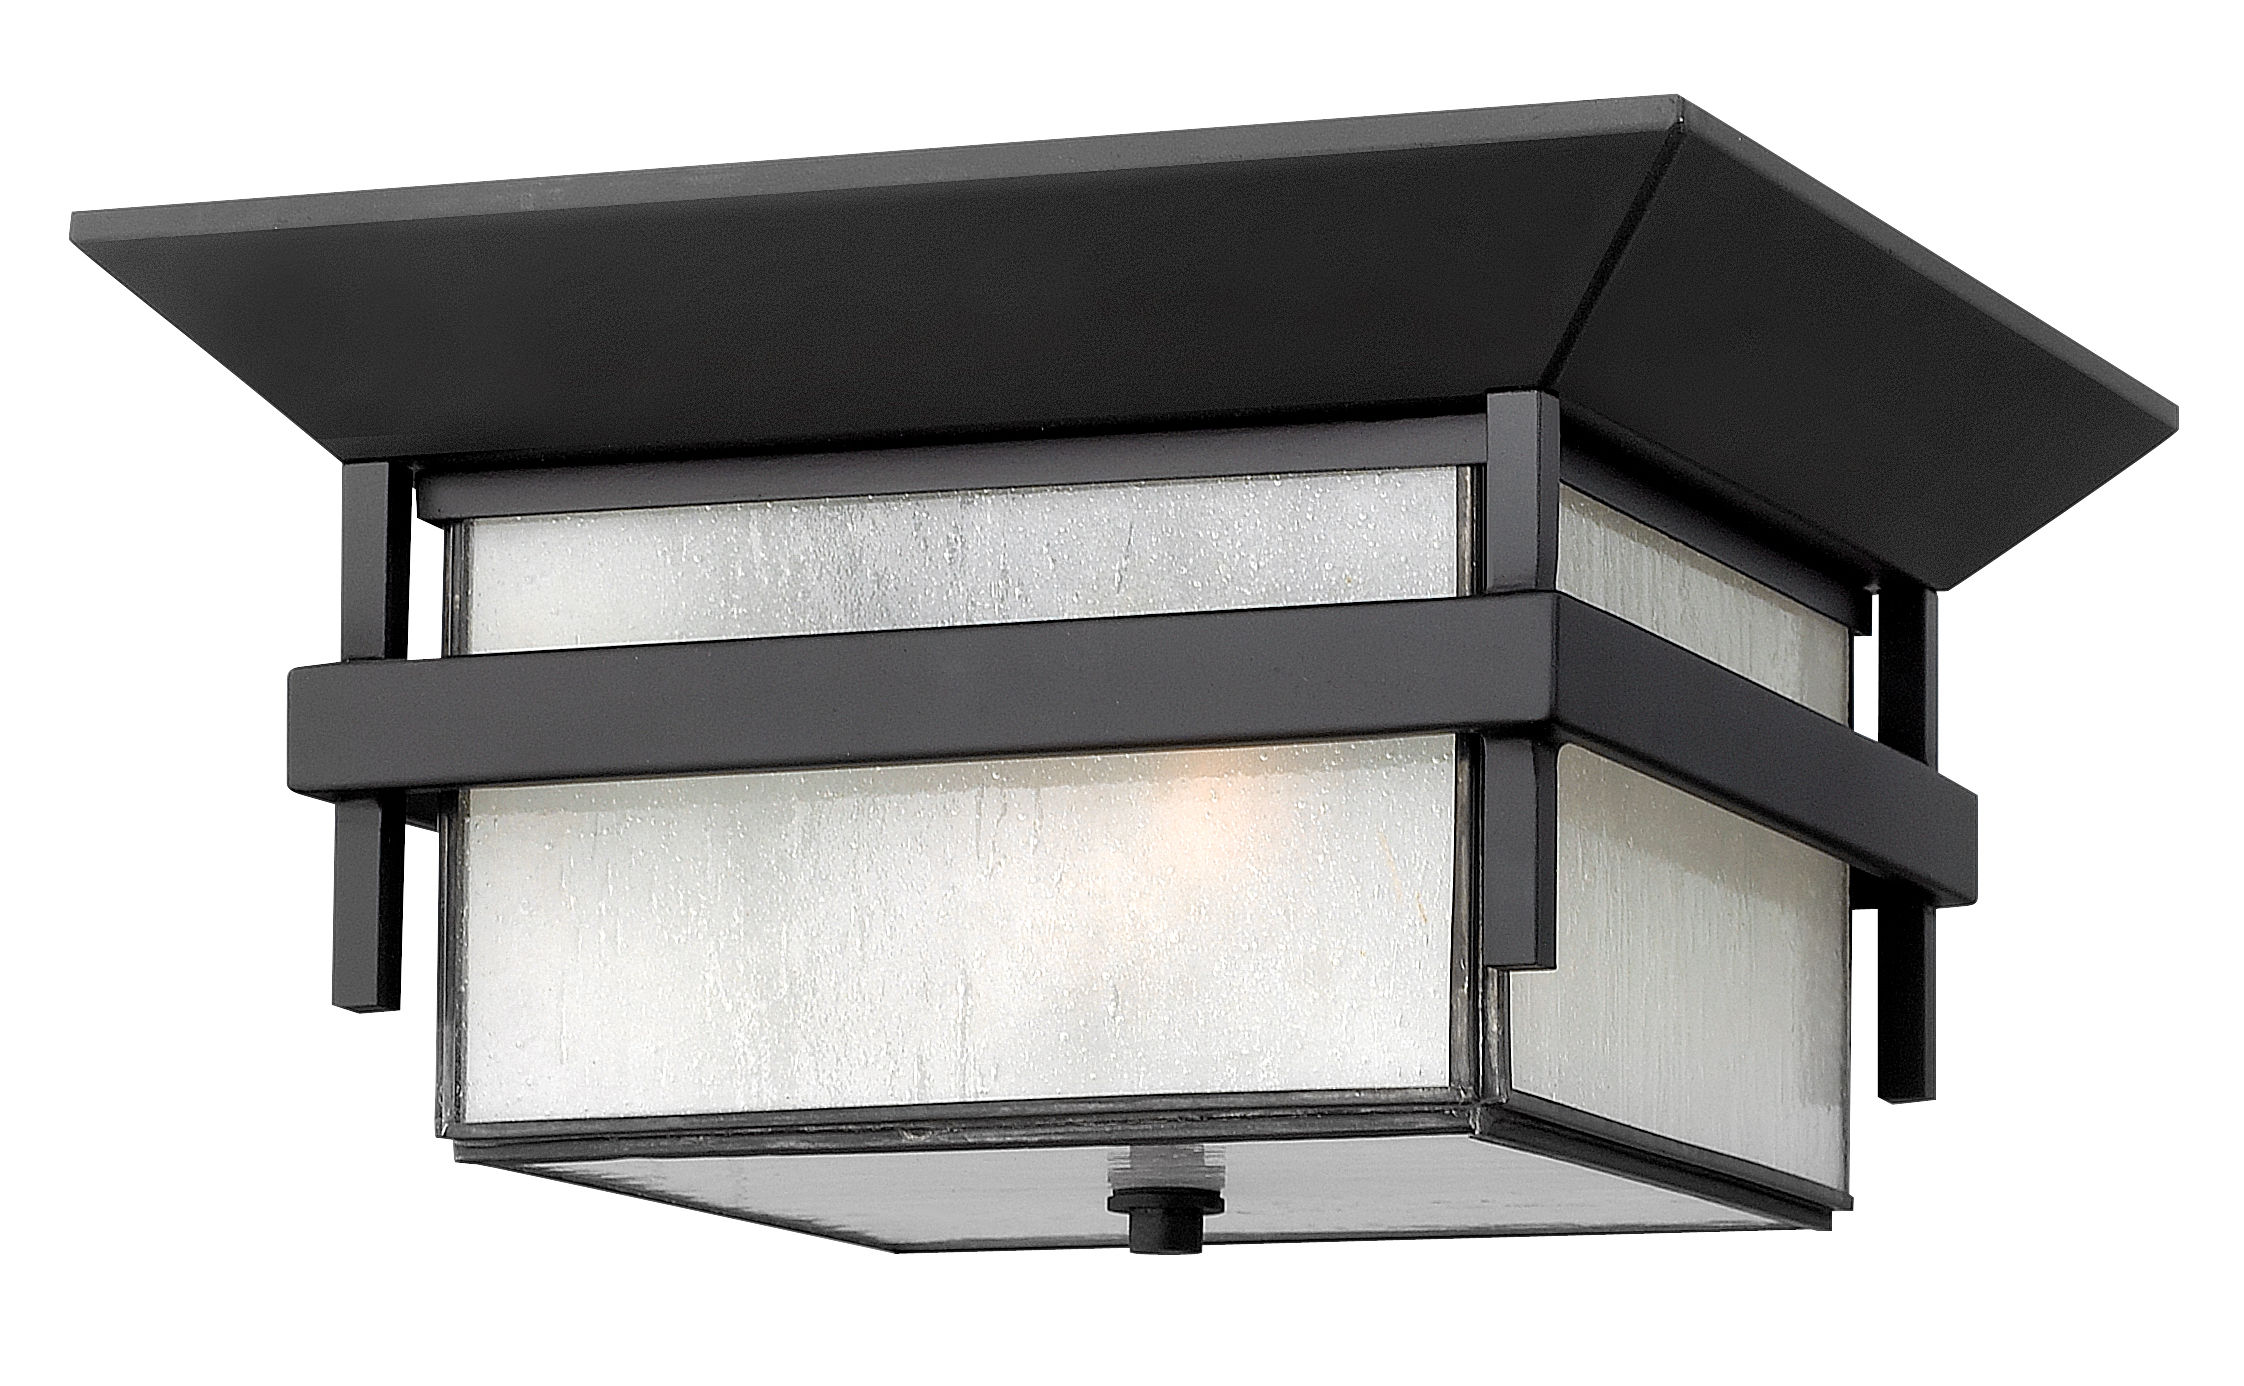 Hinkley lighting 2573sk satin black 2 light outdoor flush mount hinkley lighting 2573sk satin black 2 light outdoor flush mount ceiling fixture from the harbor collection mozeypictures Images